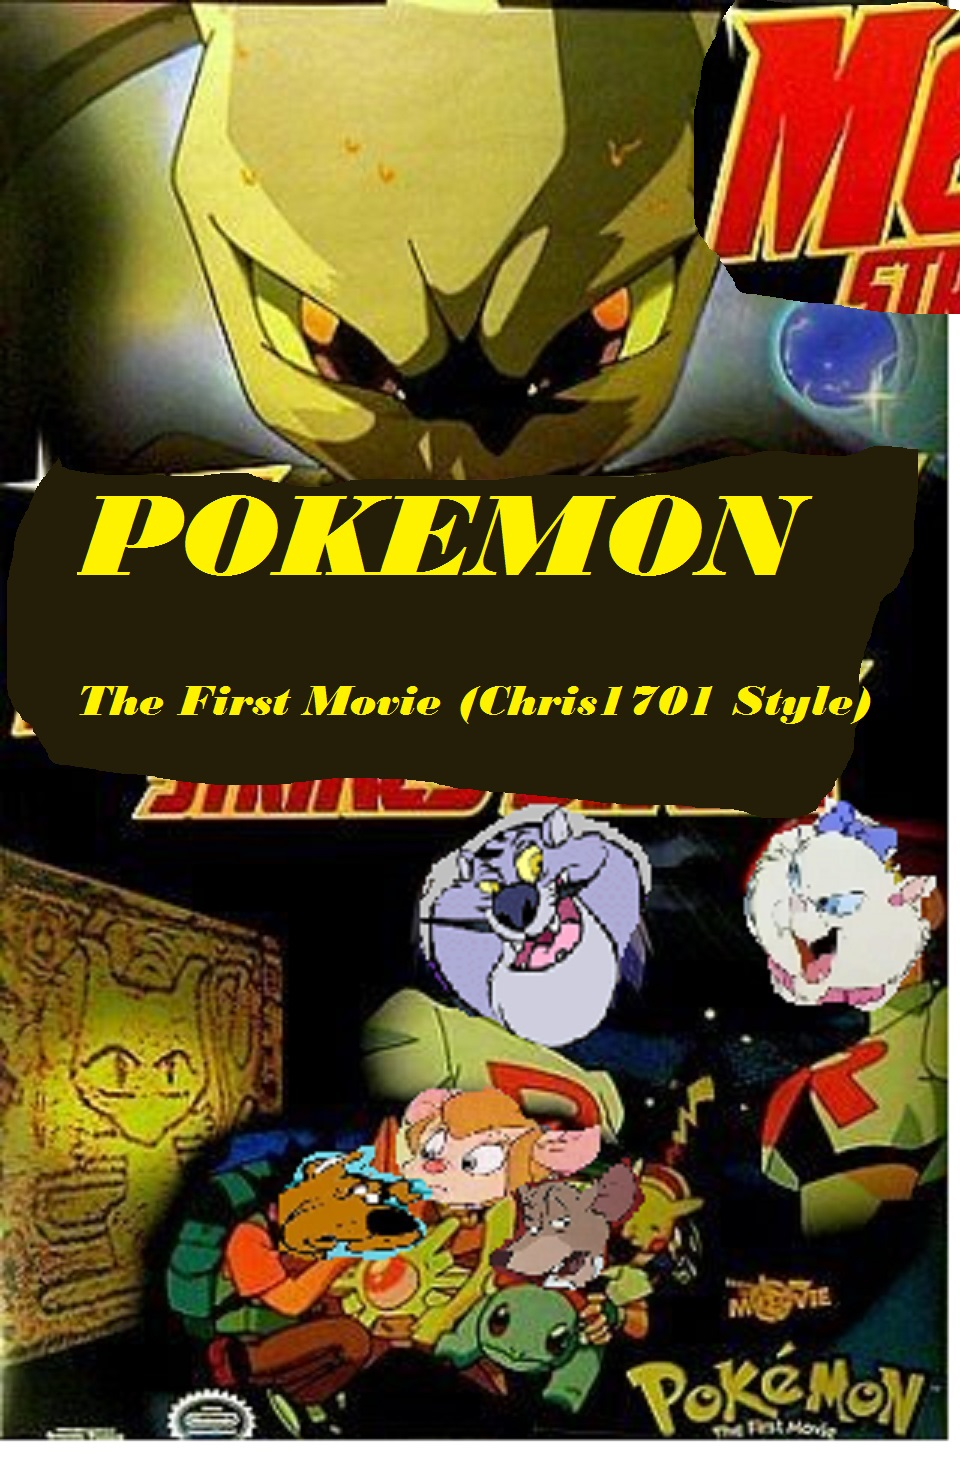 Pokemon The First Movie (Chris1701 Style)